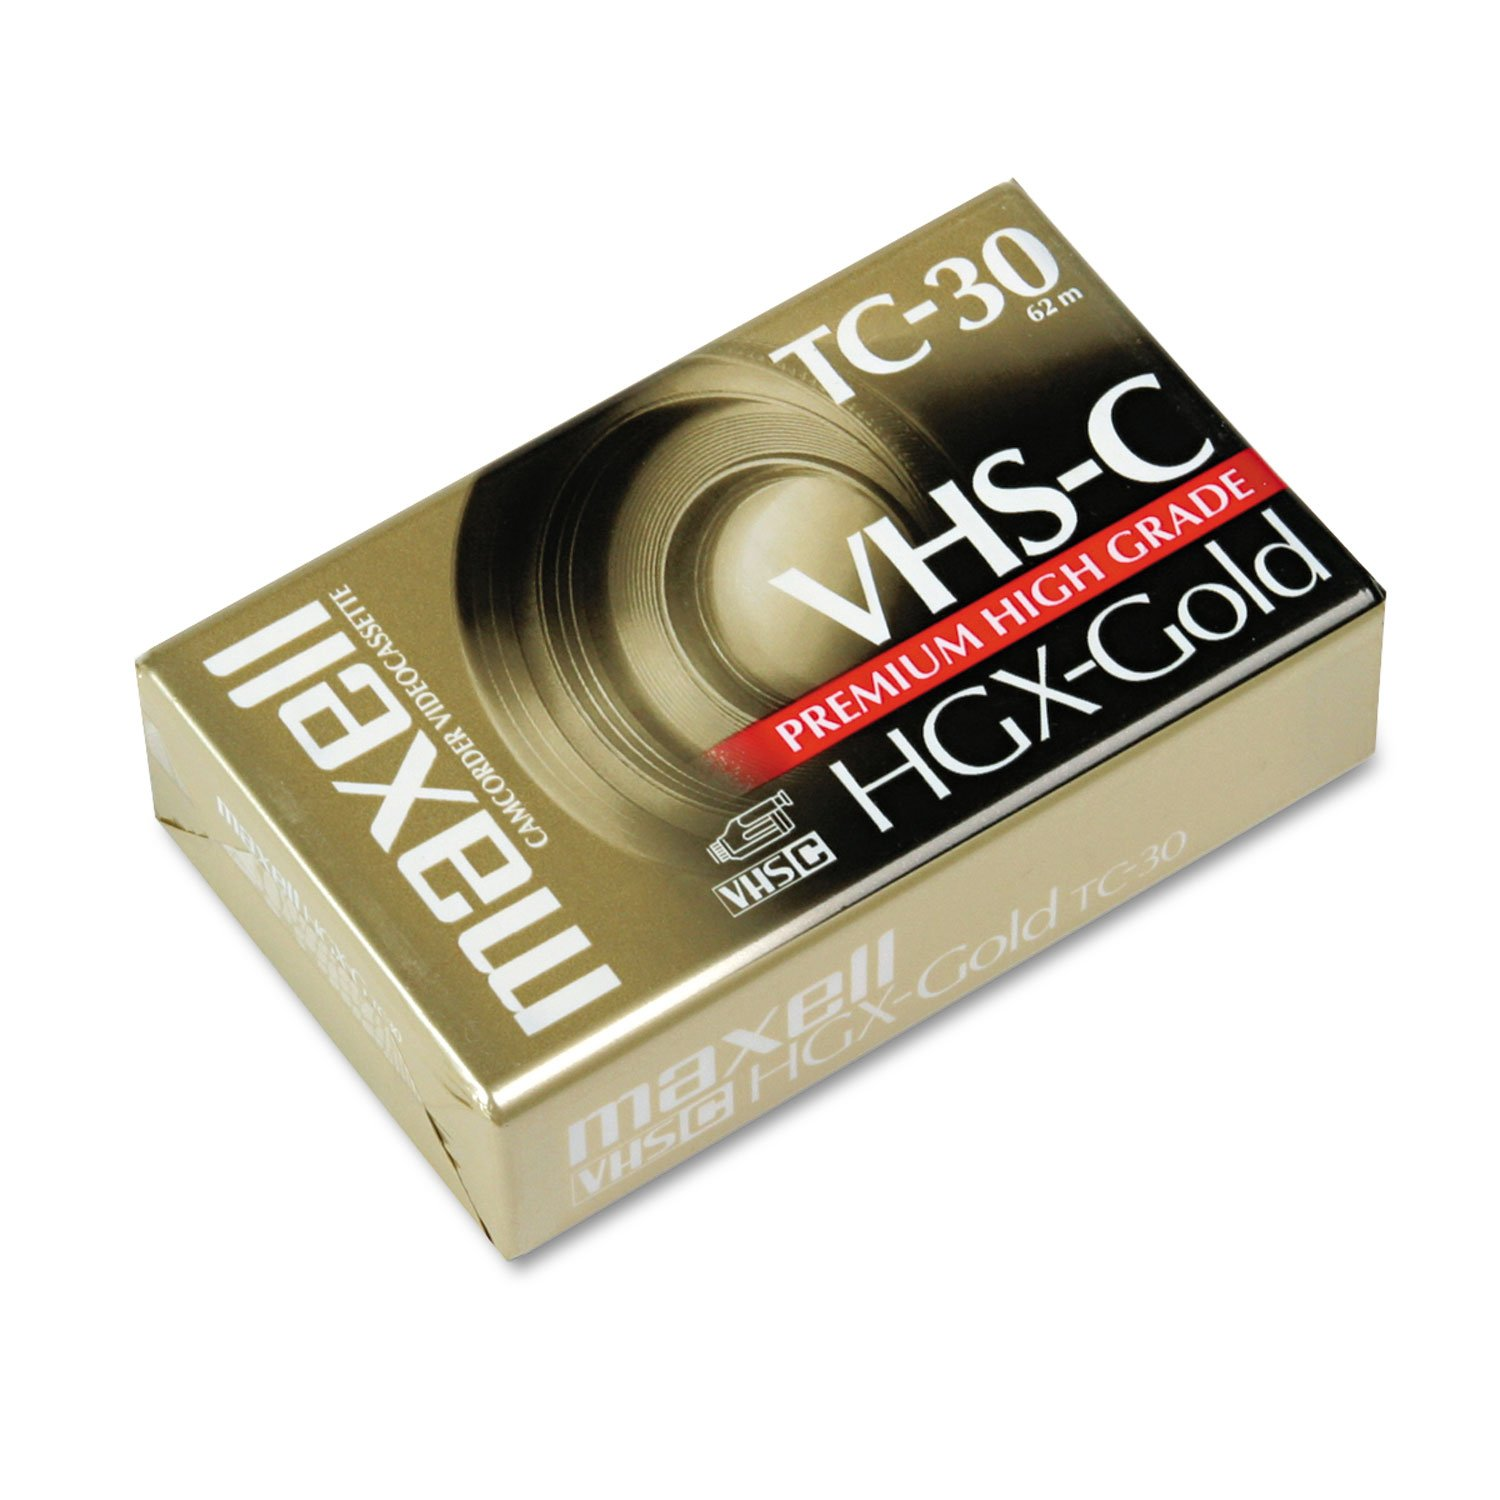 HGX-Gold Premium High Grade Videocassette Maxell 203010 Blank Media & Cleaning Cartridges